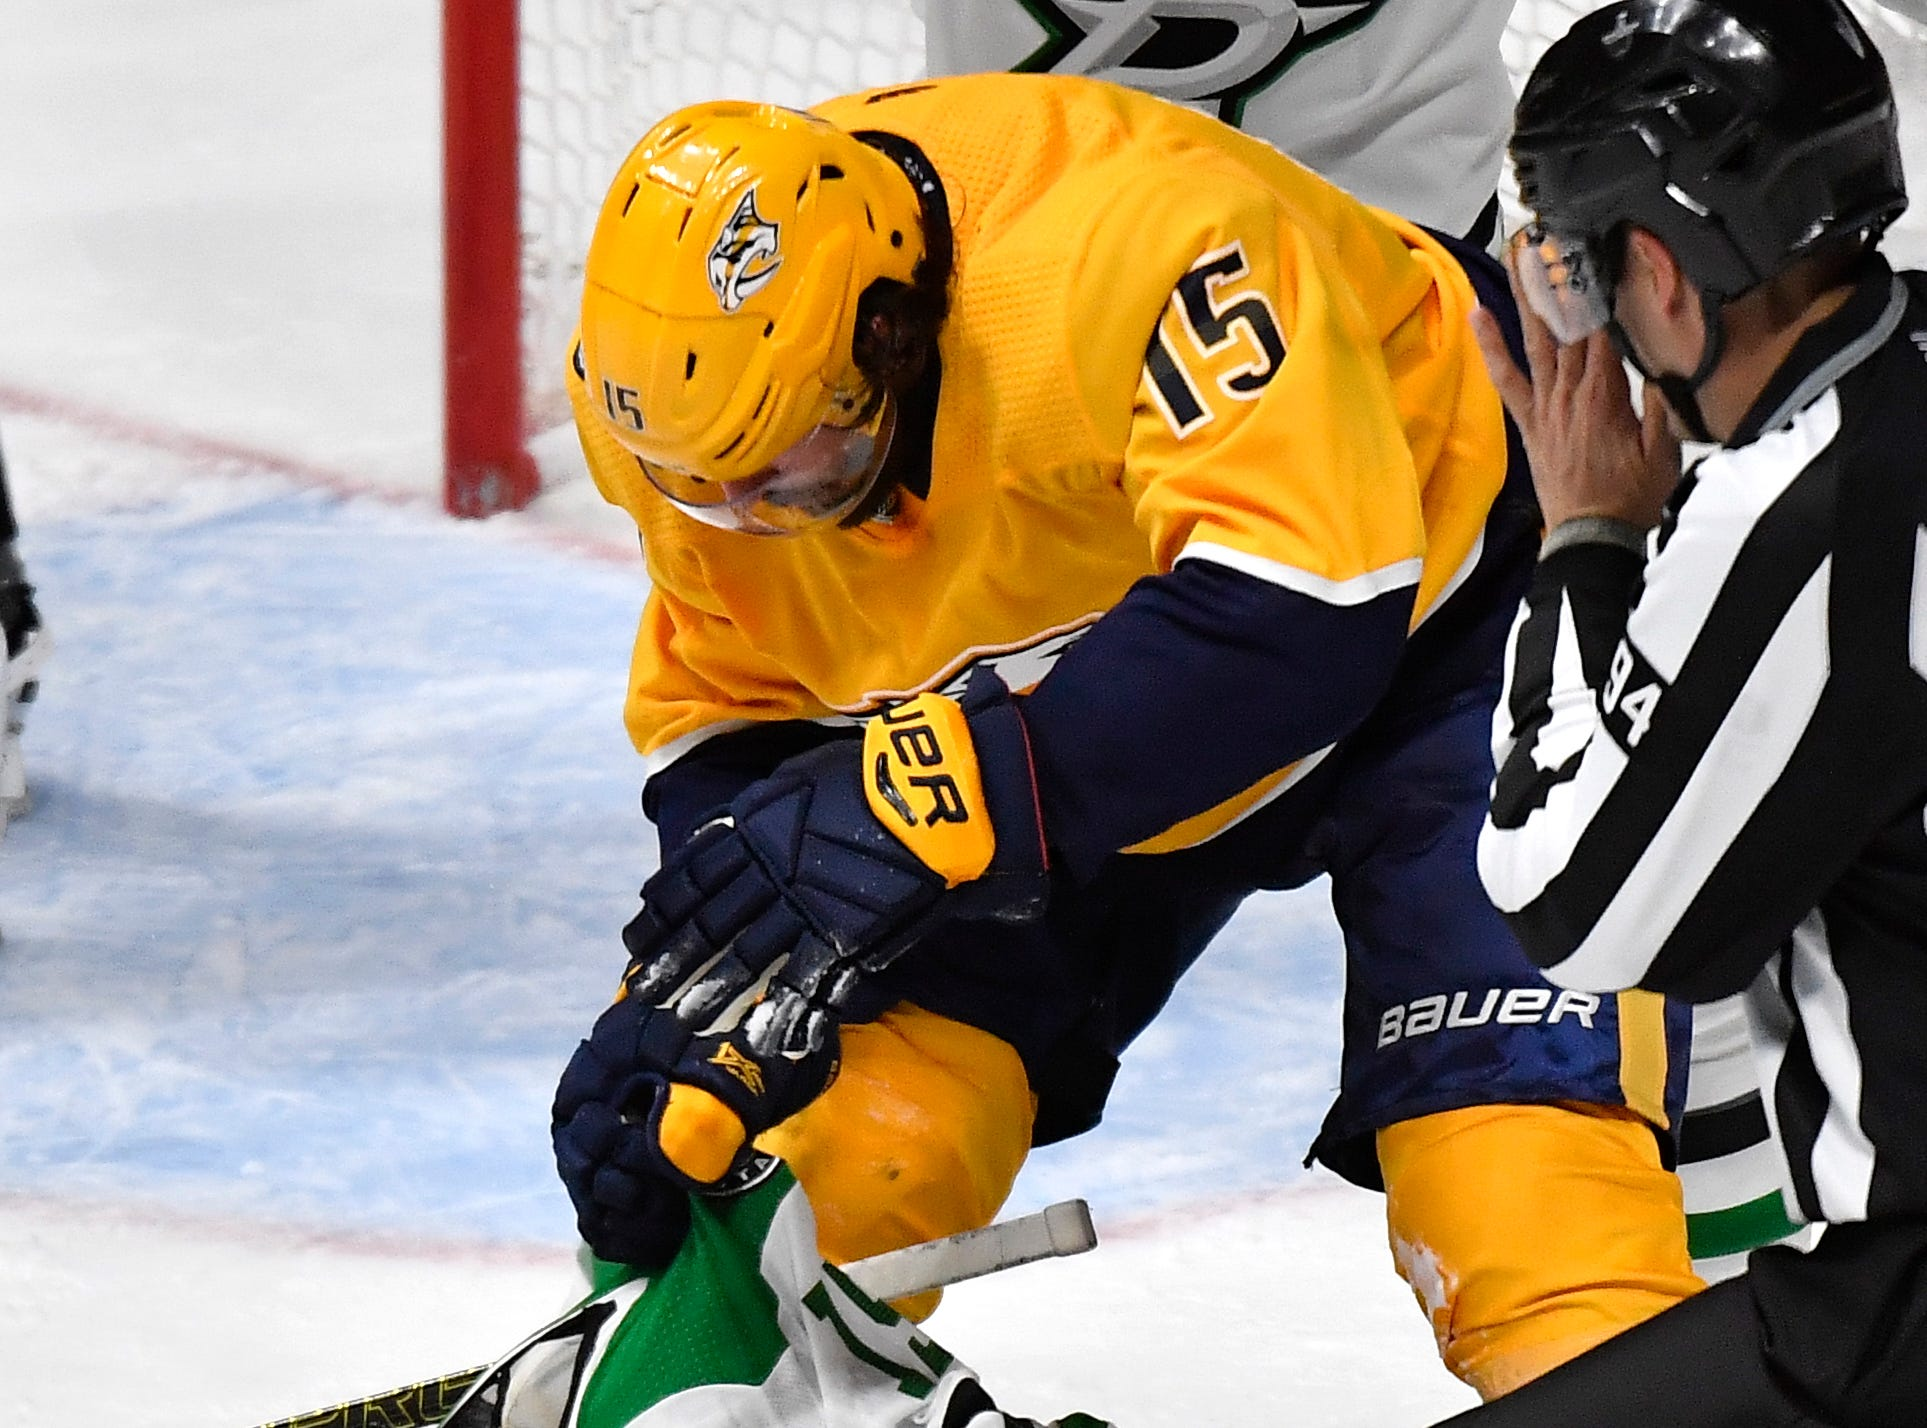 Nashville Predators right wing Craig Smith (15) fights Dallas Stars left wing Blake Comeau (15) during the third period of the divisional semifinal game at Bridgestone Arena in Nashville, Tenn., Saturday, April 13, 2019.